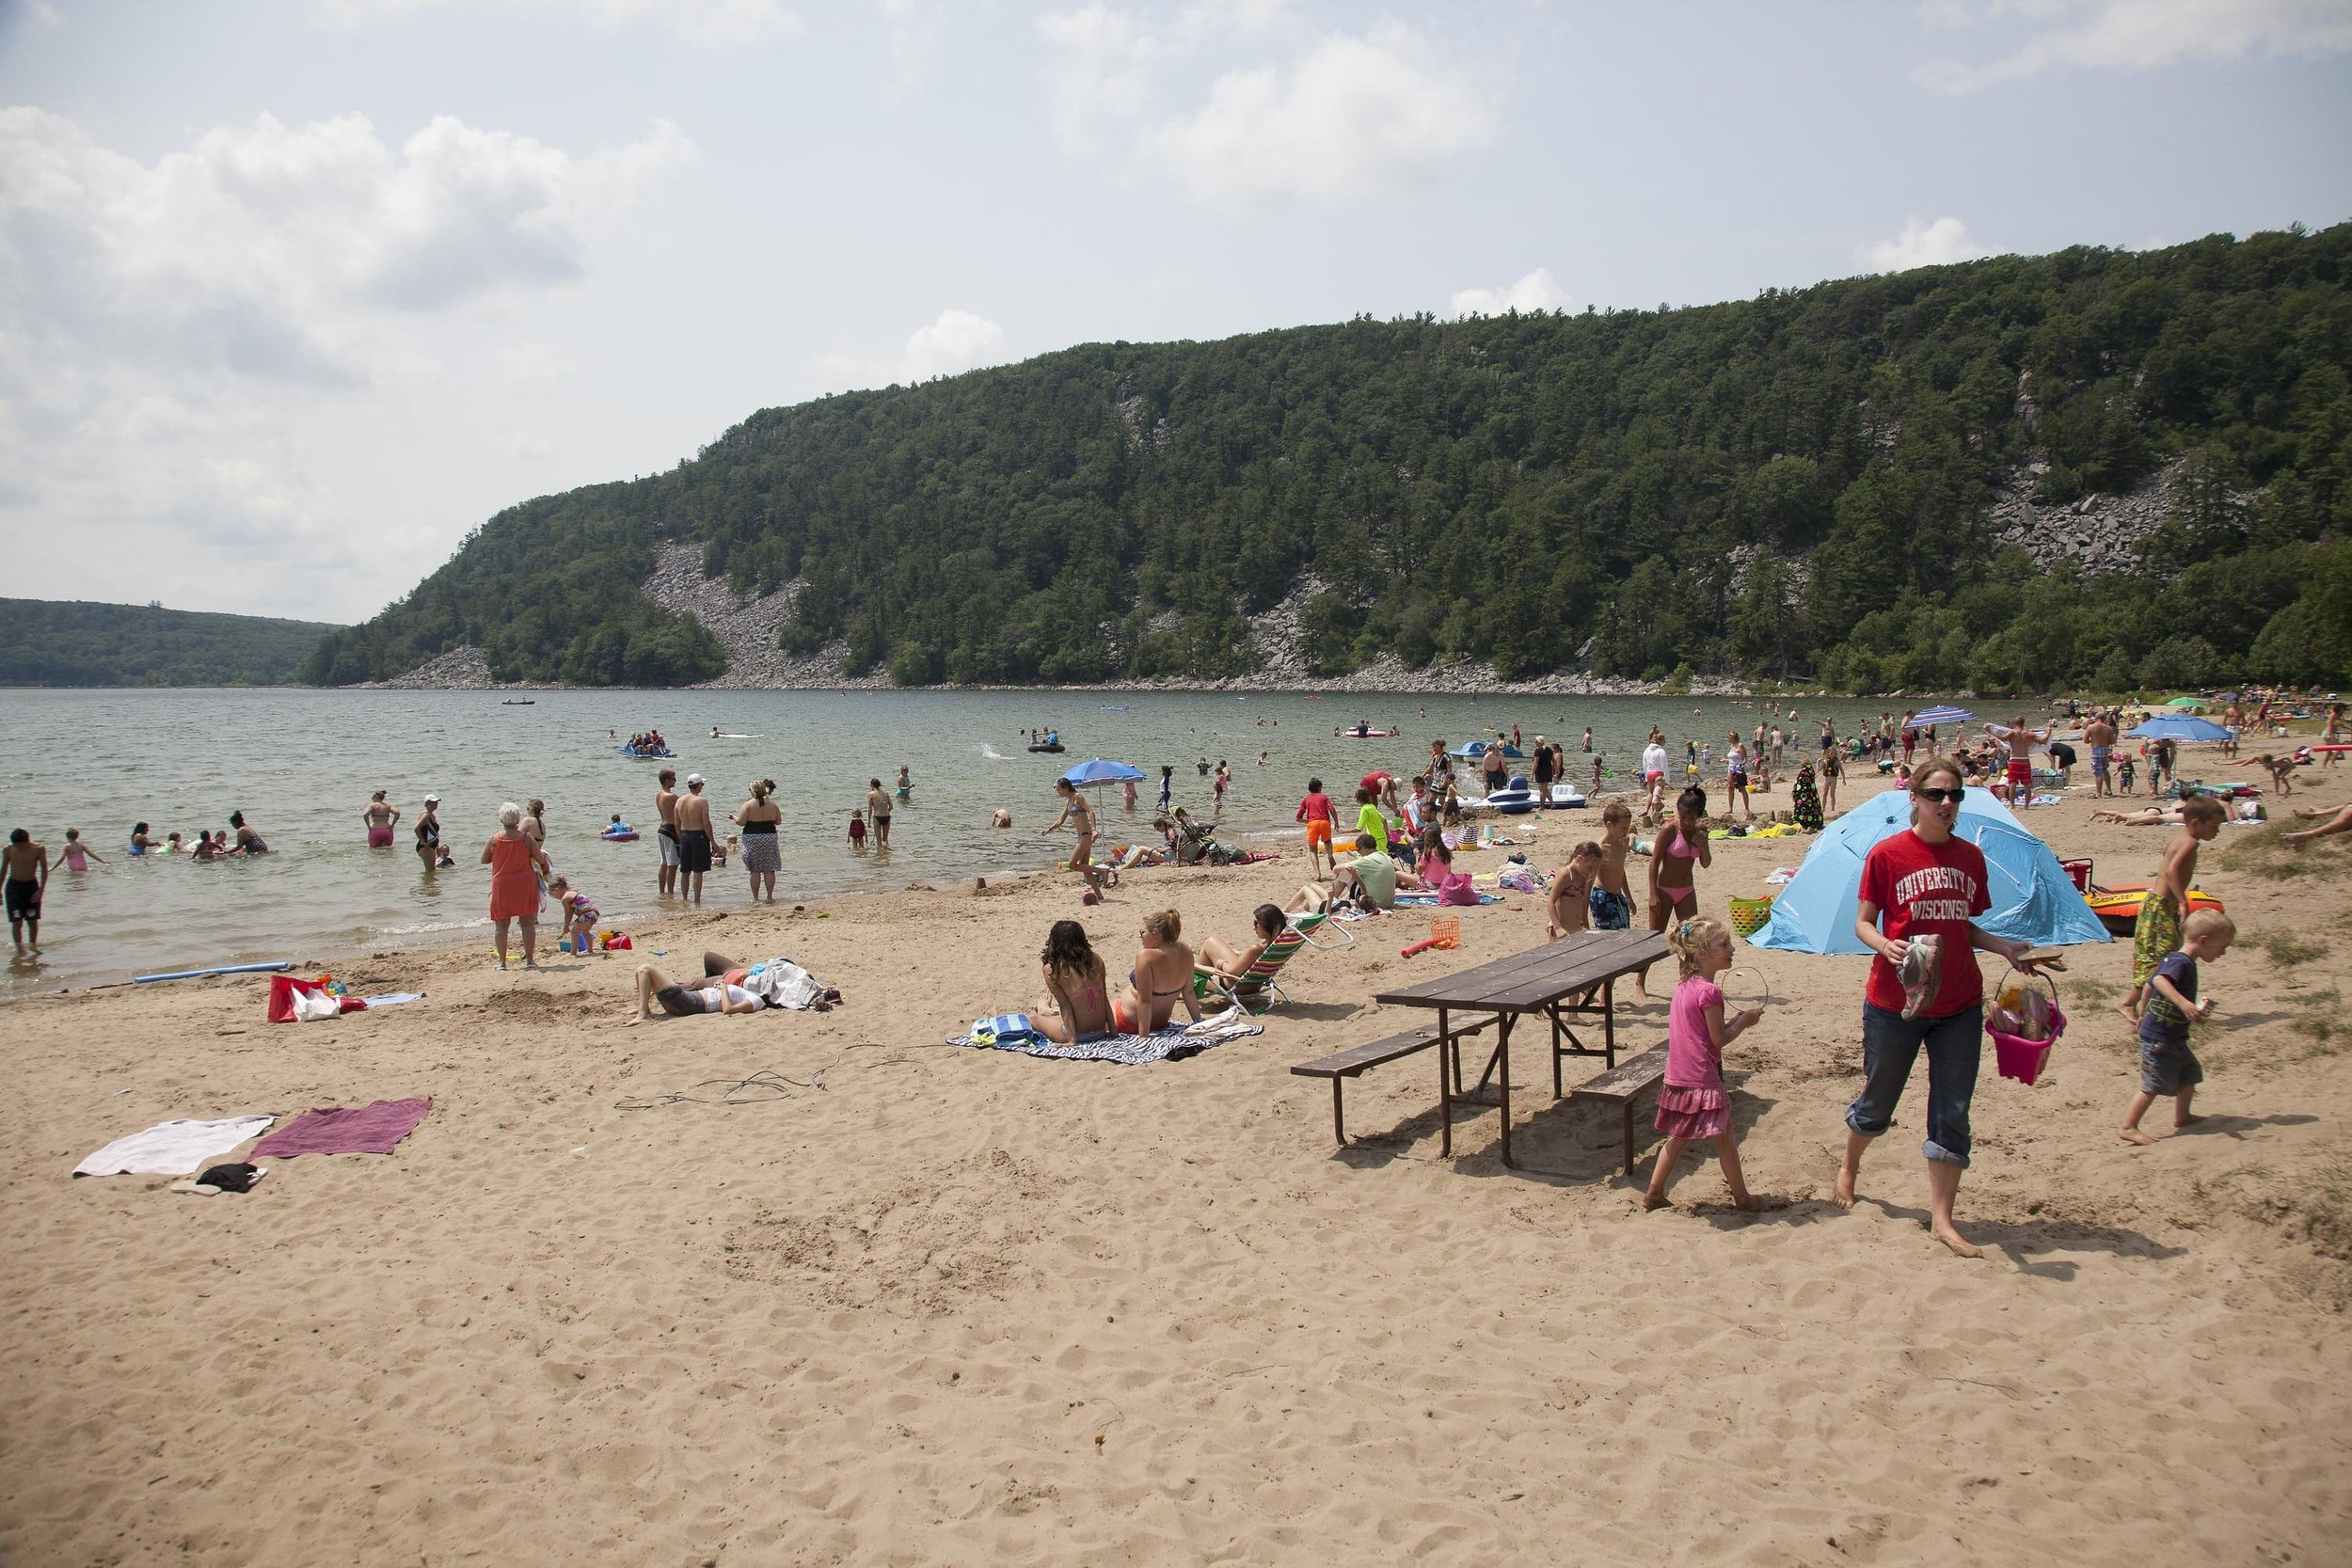 The sandy beaches are a main attraction on sunny days at Devils Lake State Park.